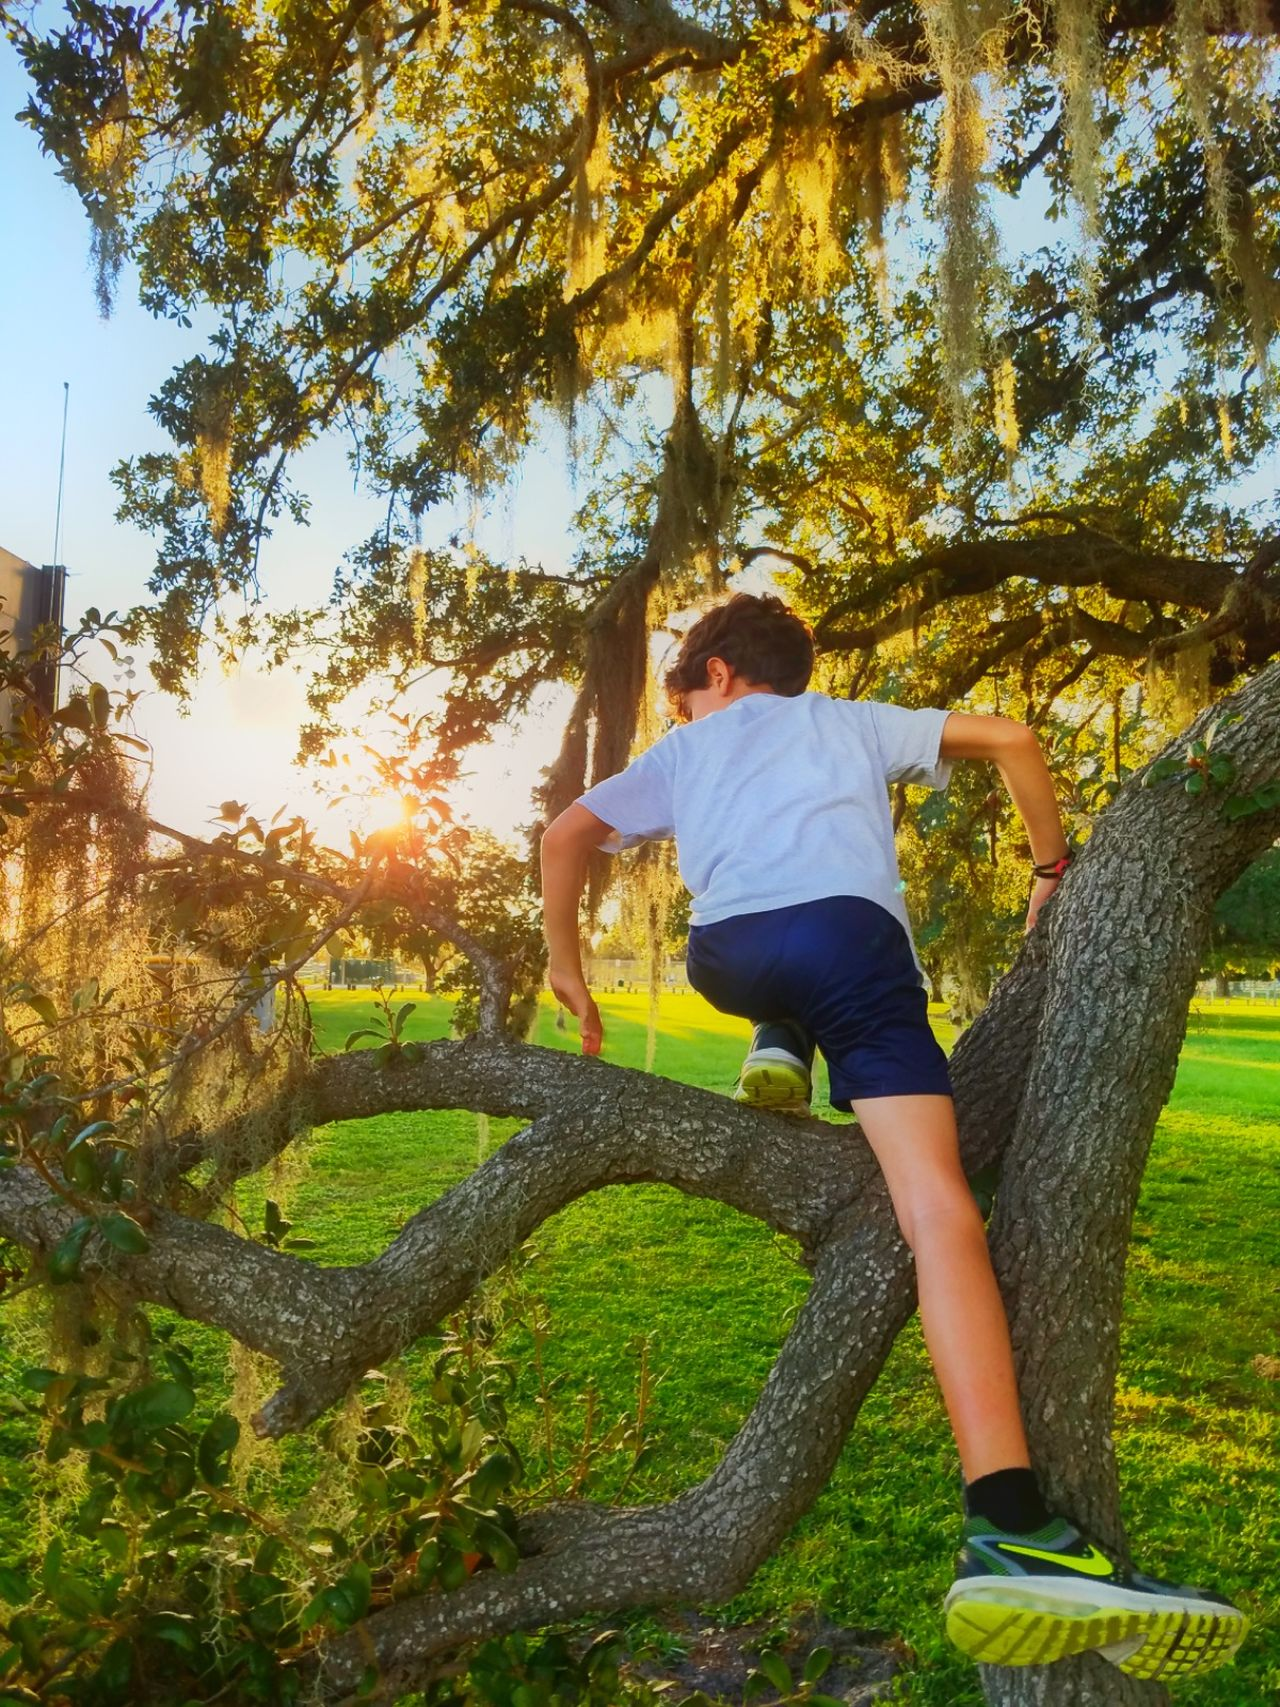 Enjoy The New Normal Tree Sunlight Full Length One Person Leisure Activity Rear View Outdoors Shadow Nature Sky Real People Day Men People Boy Climbing Tree